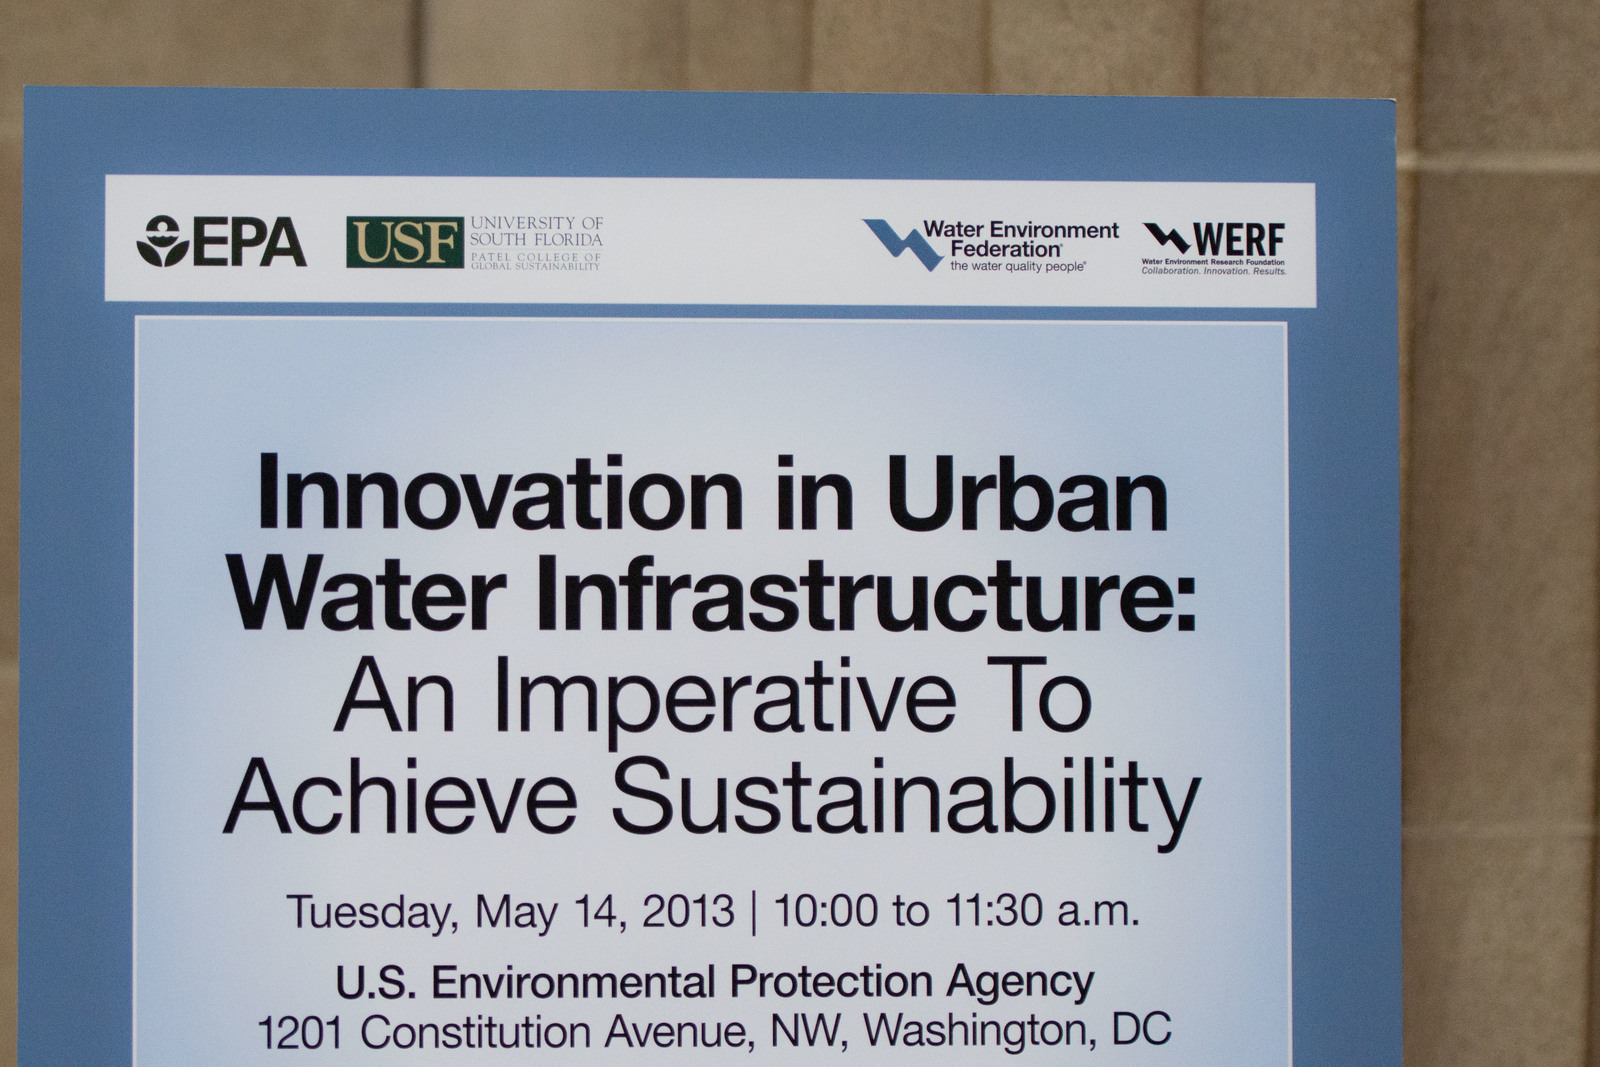 Office of Water - Innovation in Urban Water Infrastructure [412-APD-1414-2013-05-14_WaterImperative_001.jpg]